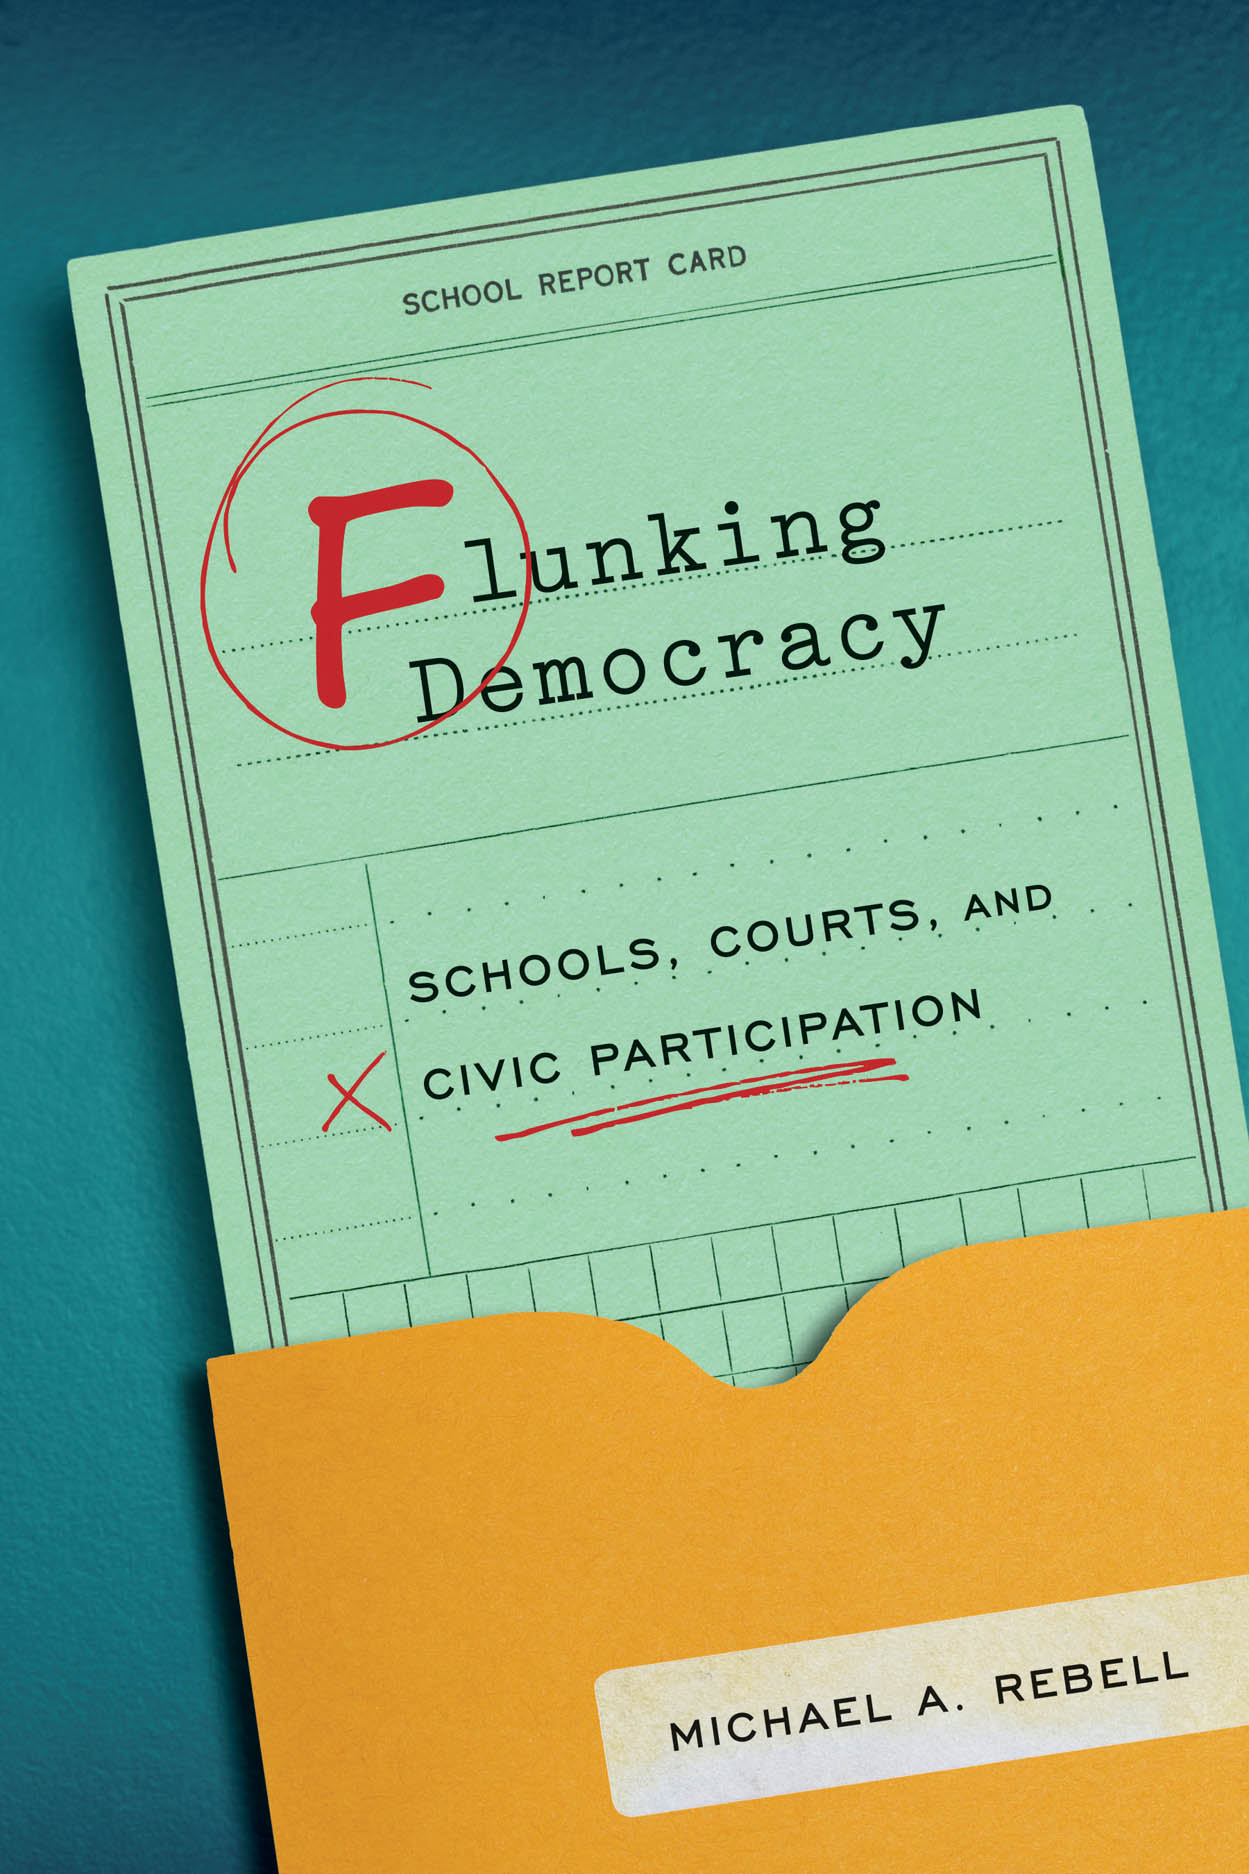 Flunking Democracy: Schools, Courts, and Civic Participation